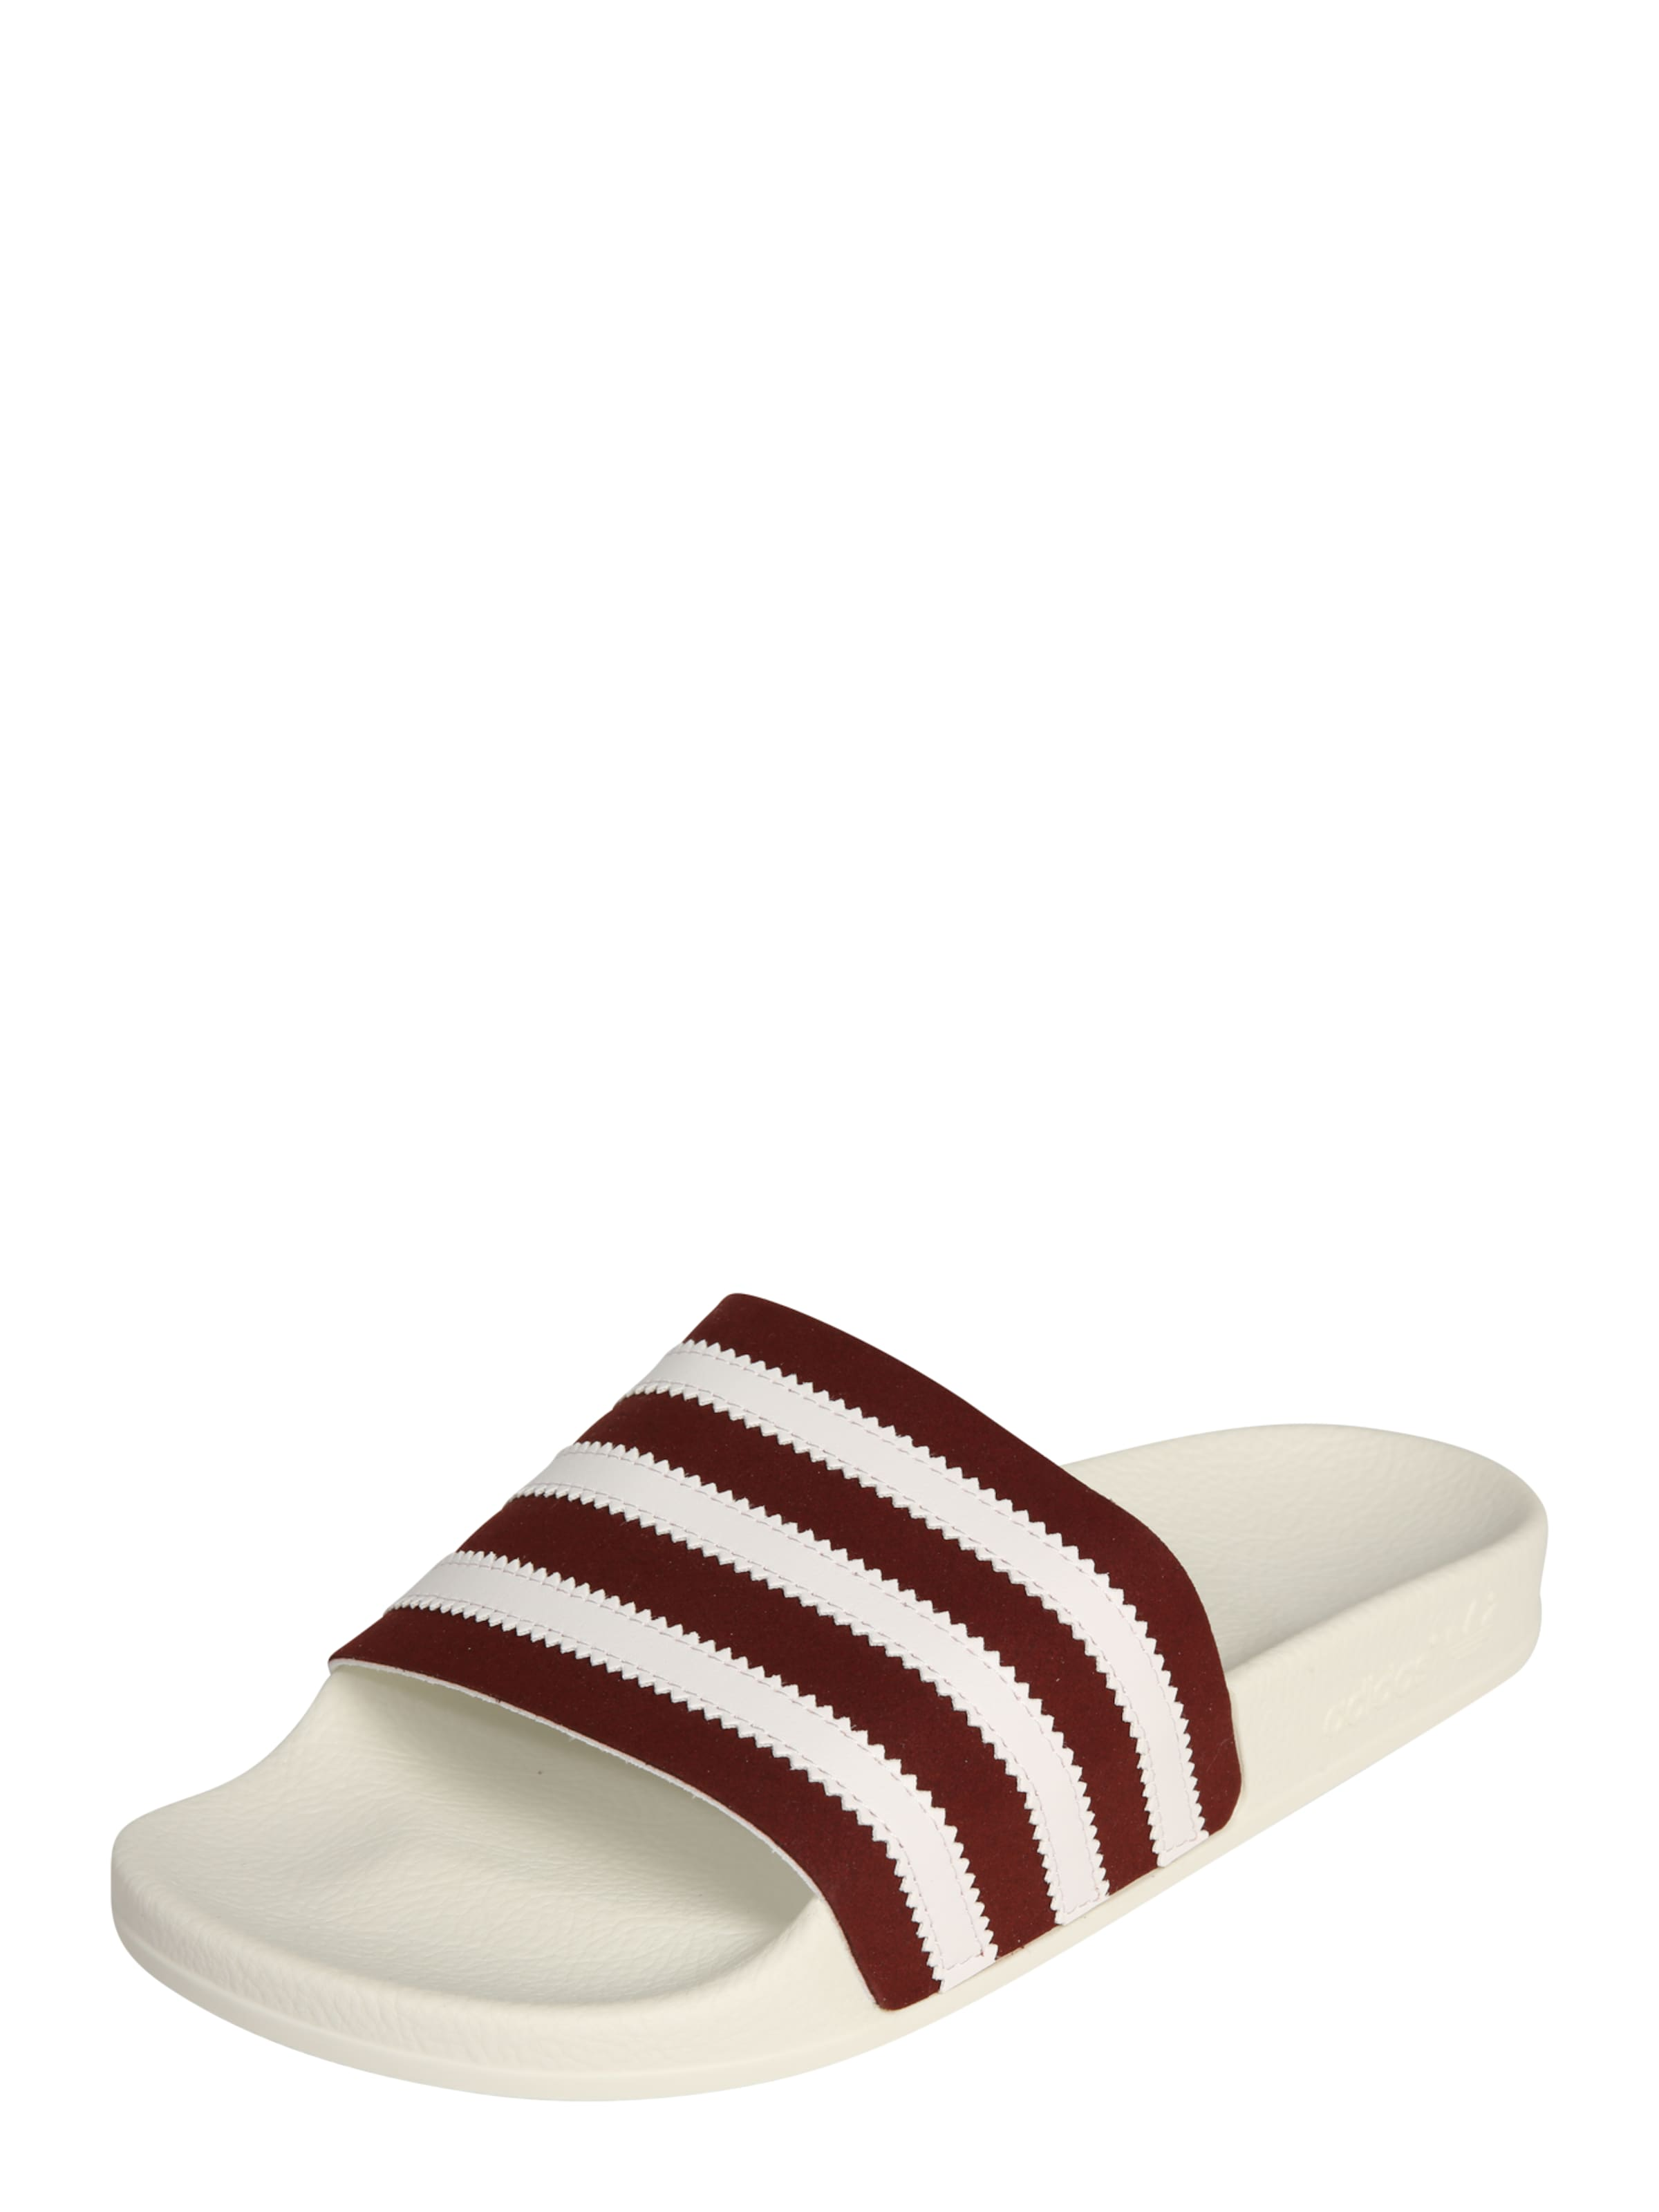 Bade BlauWeiß Adidas slider 'adilette' In Originals SzUVpqGM